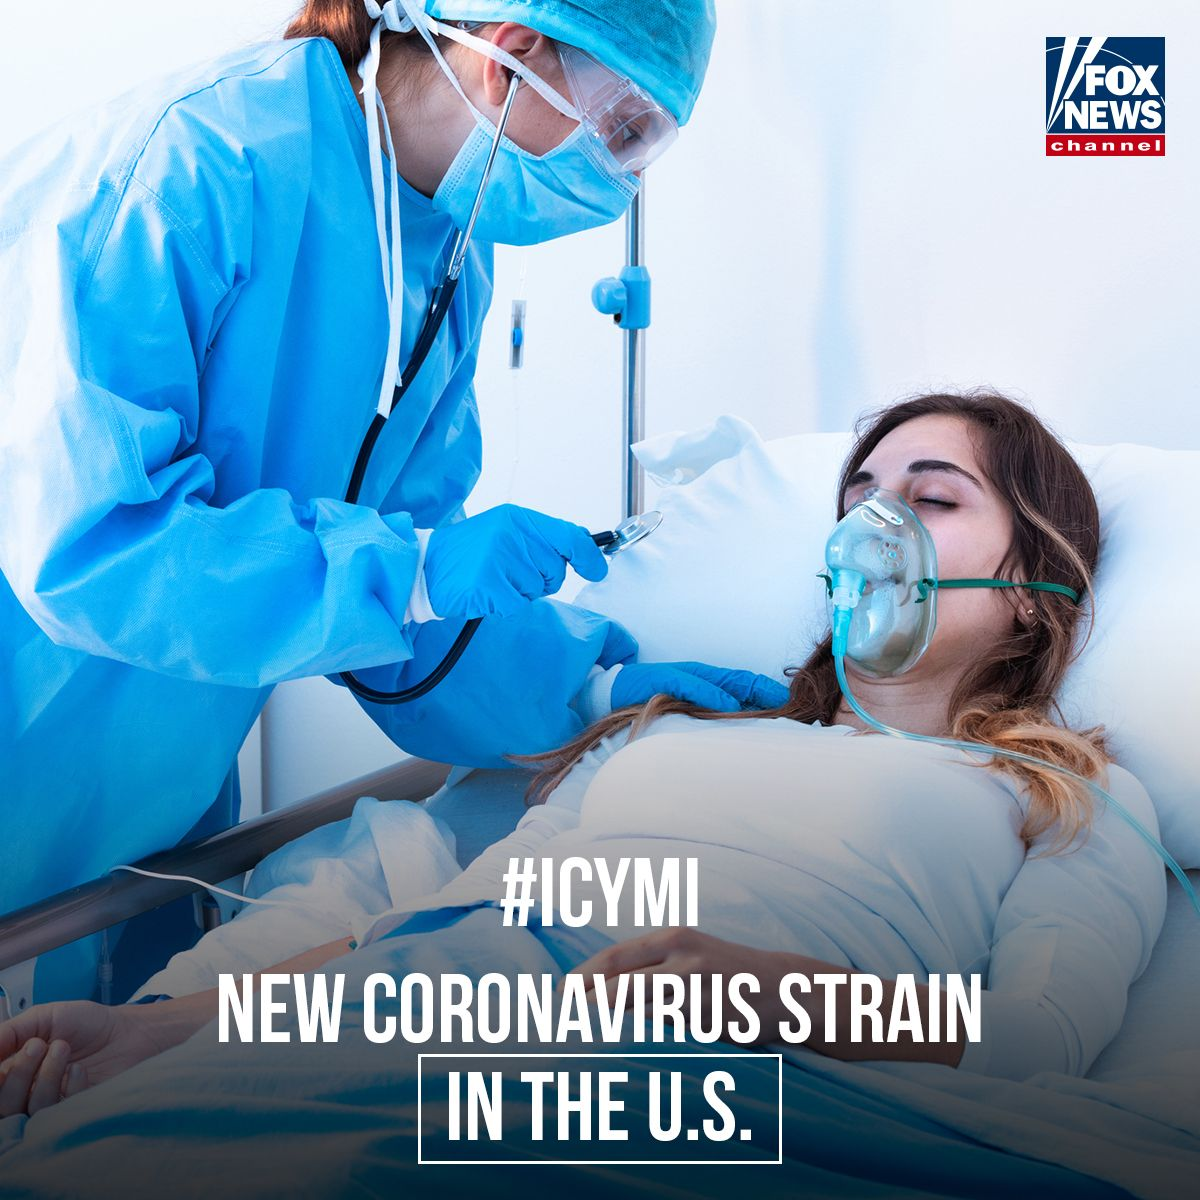 New Coronavirus Strain in the U.S.